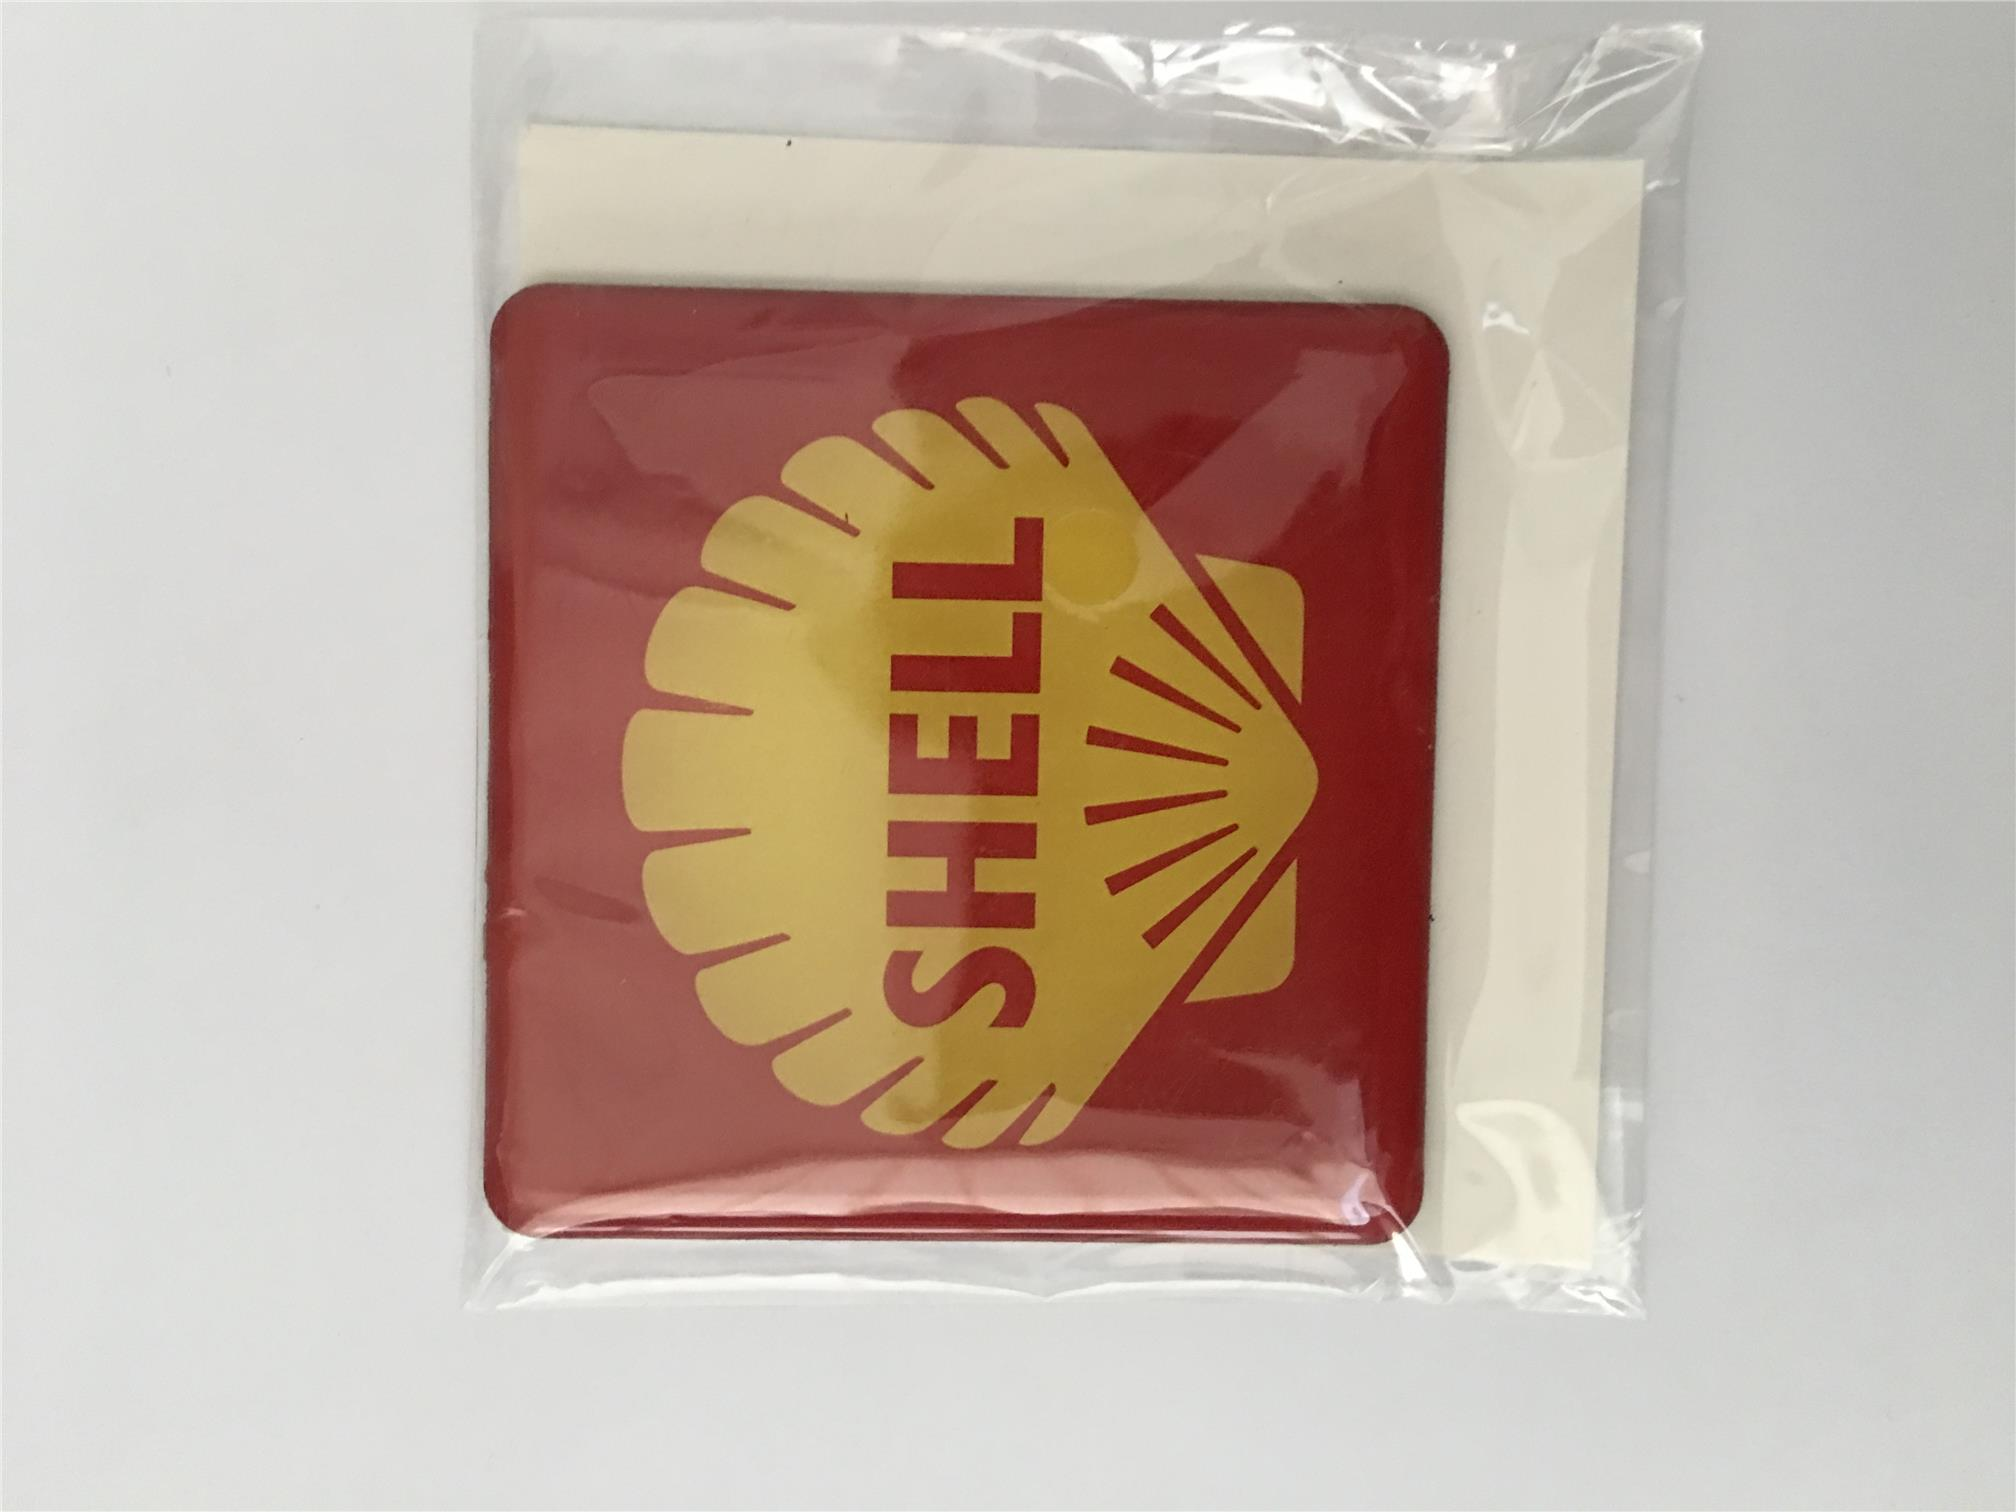 Shell logo Sticker magnet..